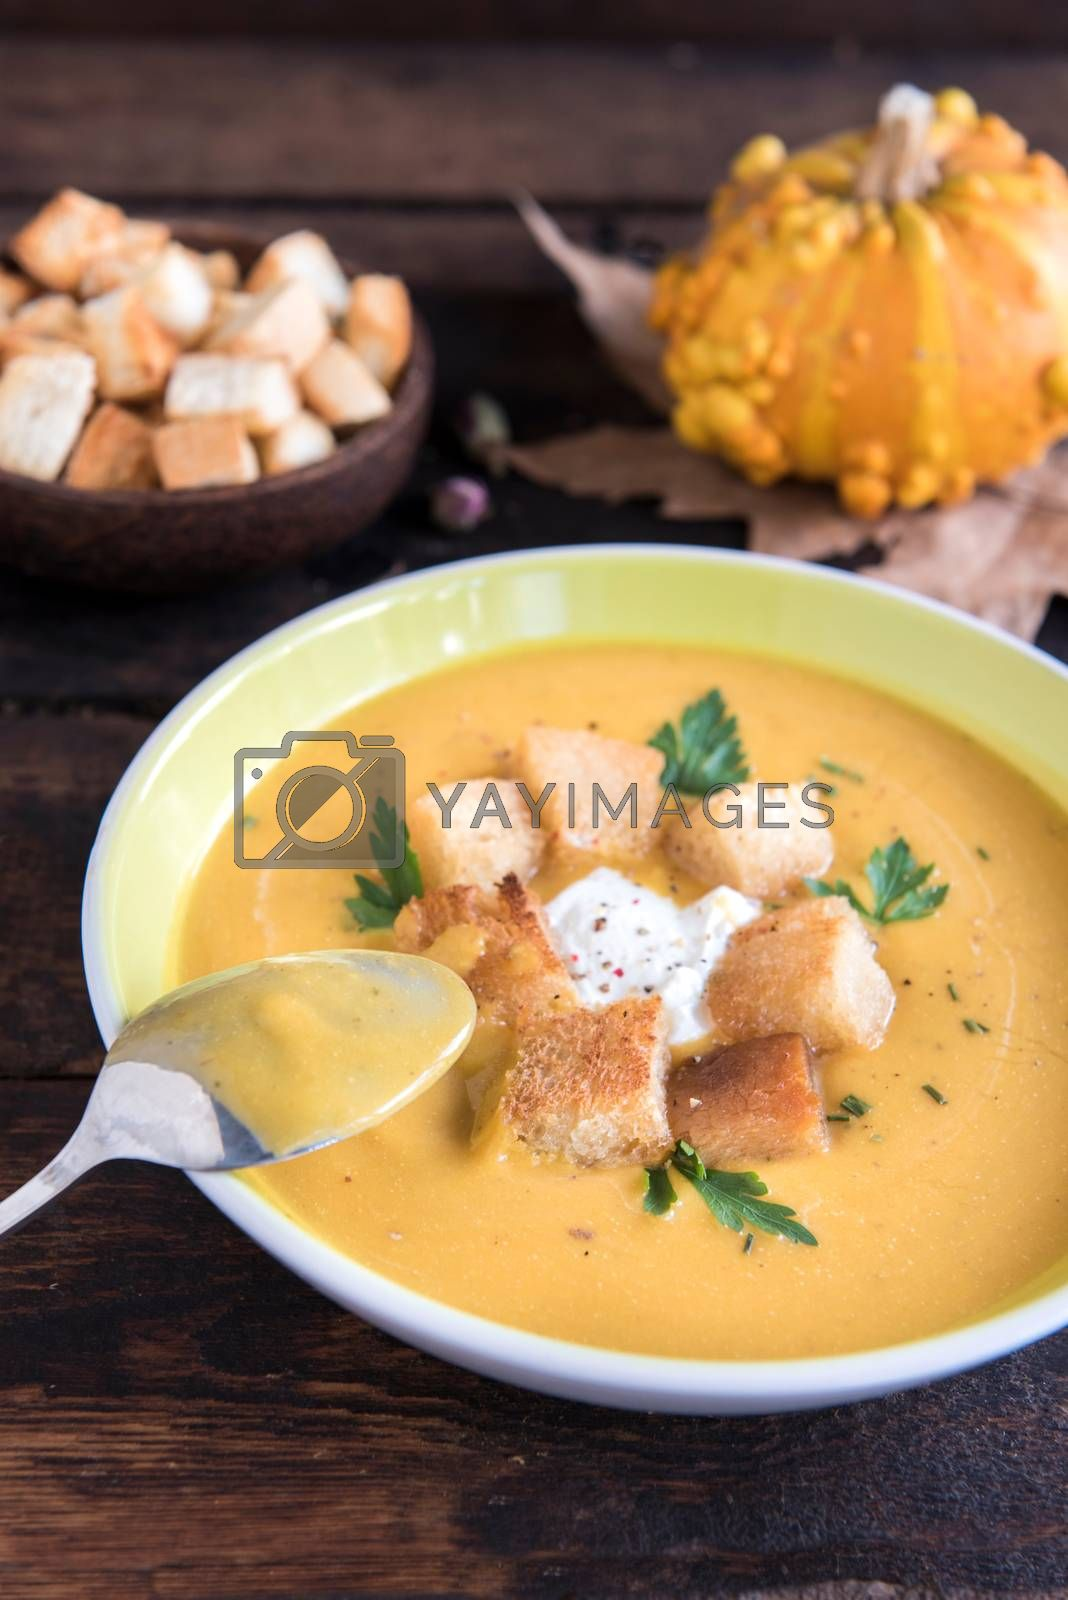 Homemade pumpkin soup with milk cream and croutons bread in the plate,selective focus